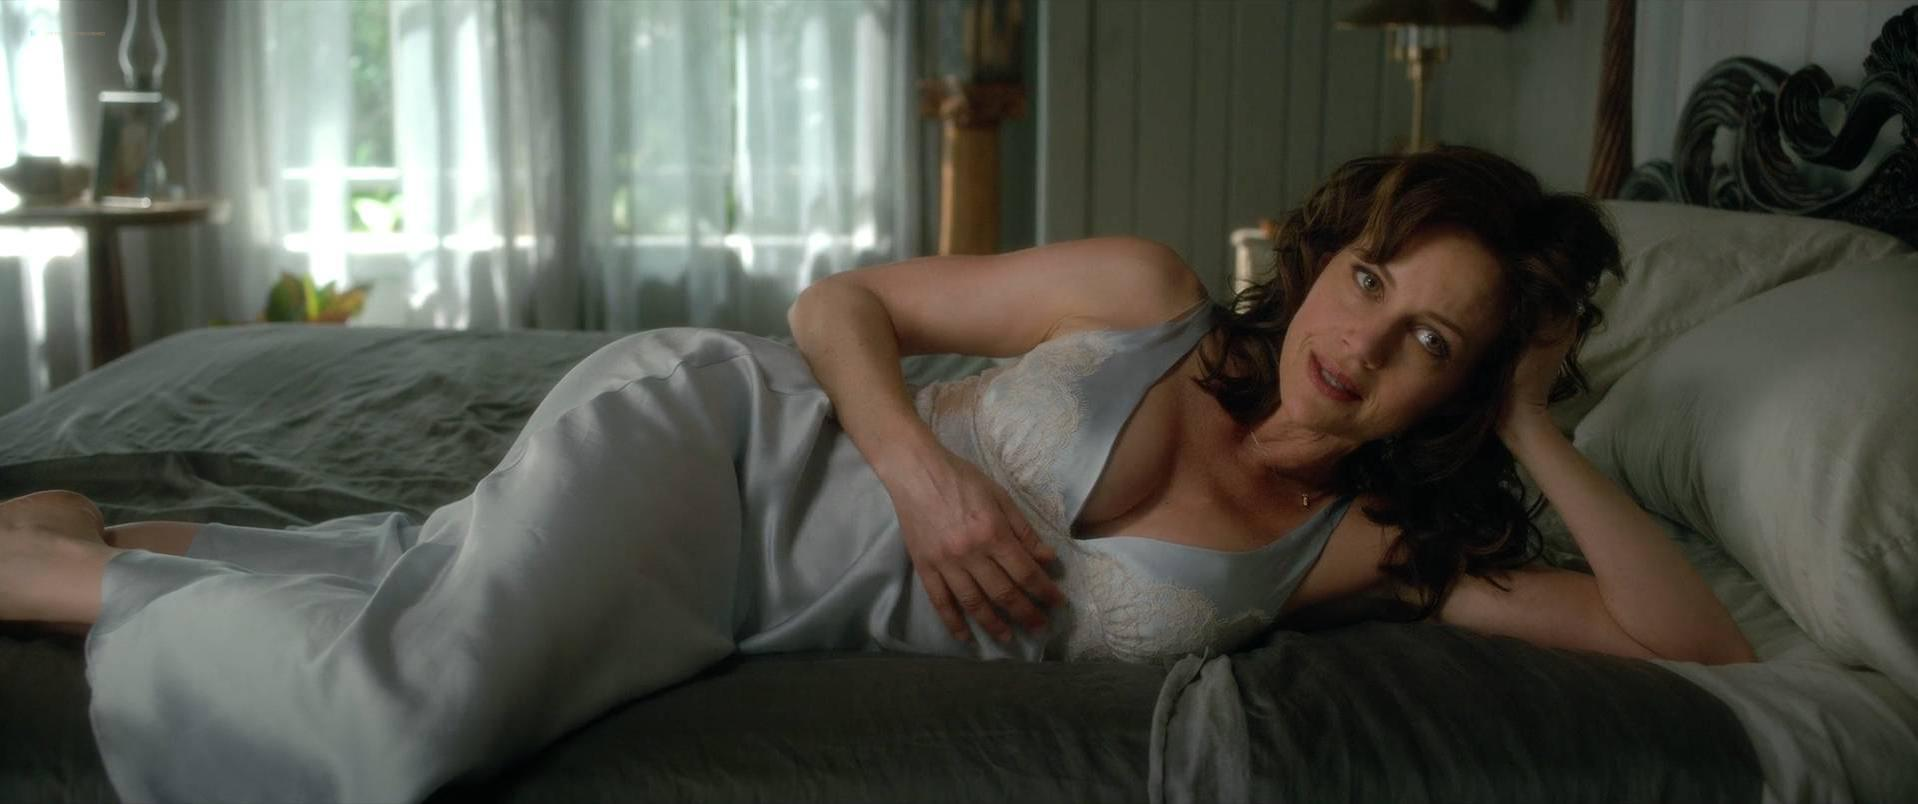 Carla gugino every day 2010 - 2 part 2